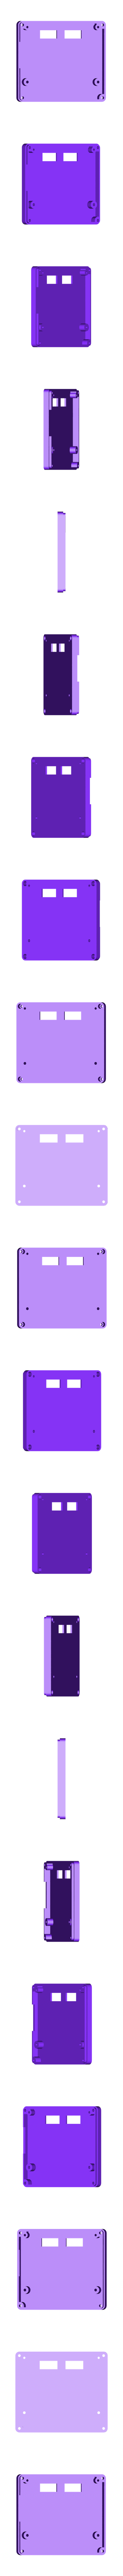 smart_full_grap_display_Bottom_Case_FGD.stl Télécharger fichier STL gratuit FDM Imprimante de Kleine Reus 300x300x900x900 • Objet pour imprimante 3D, Job